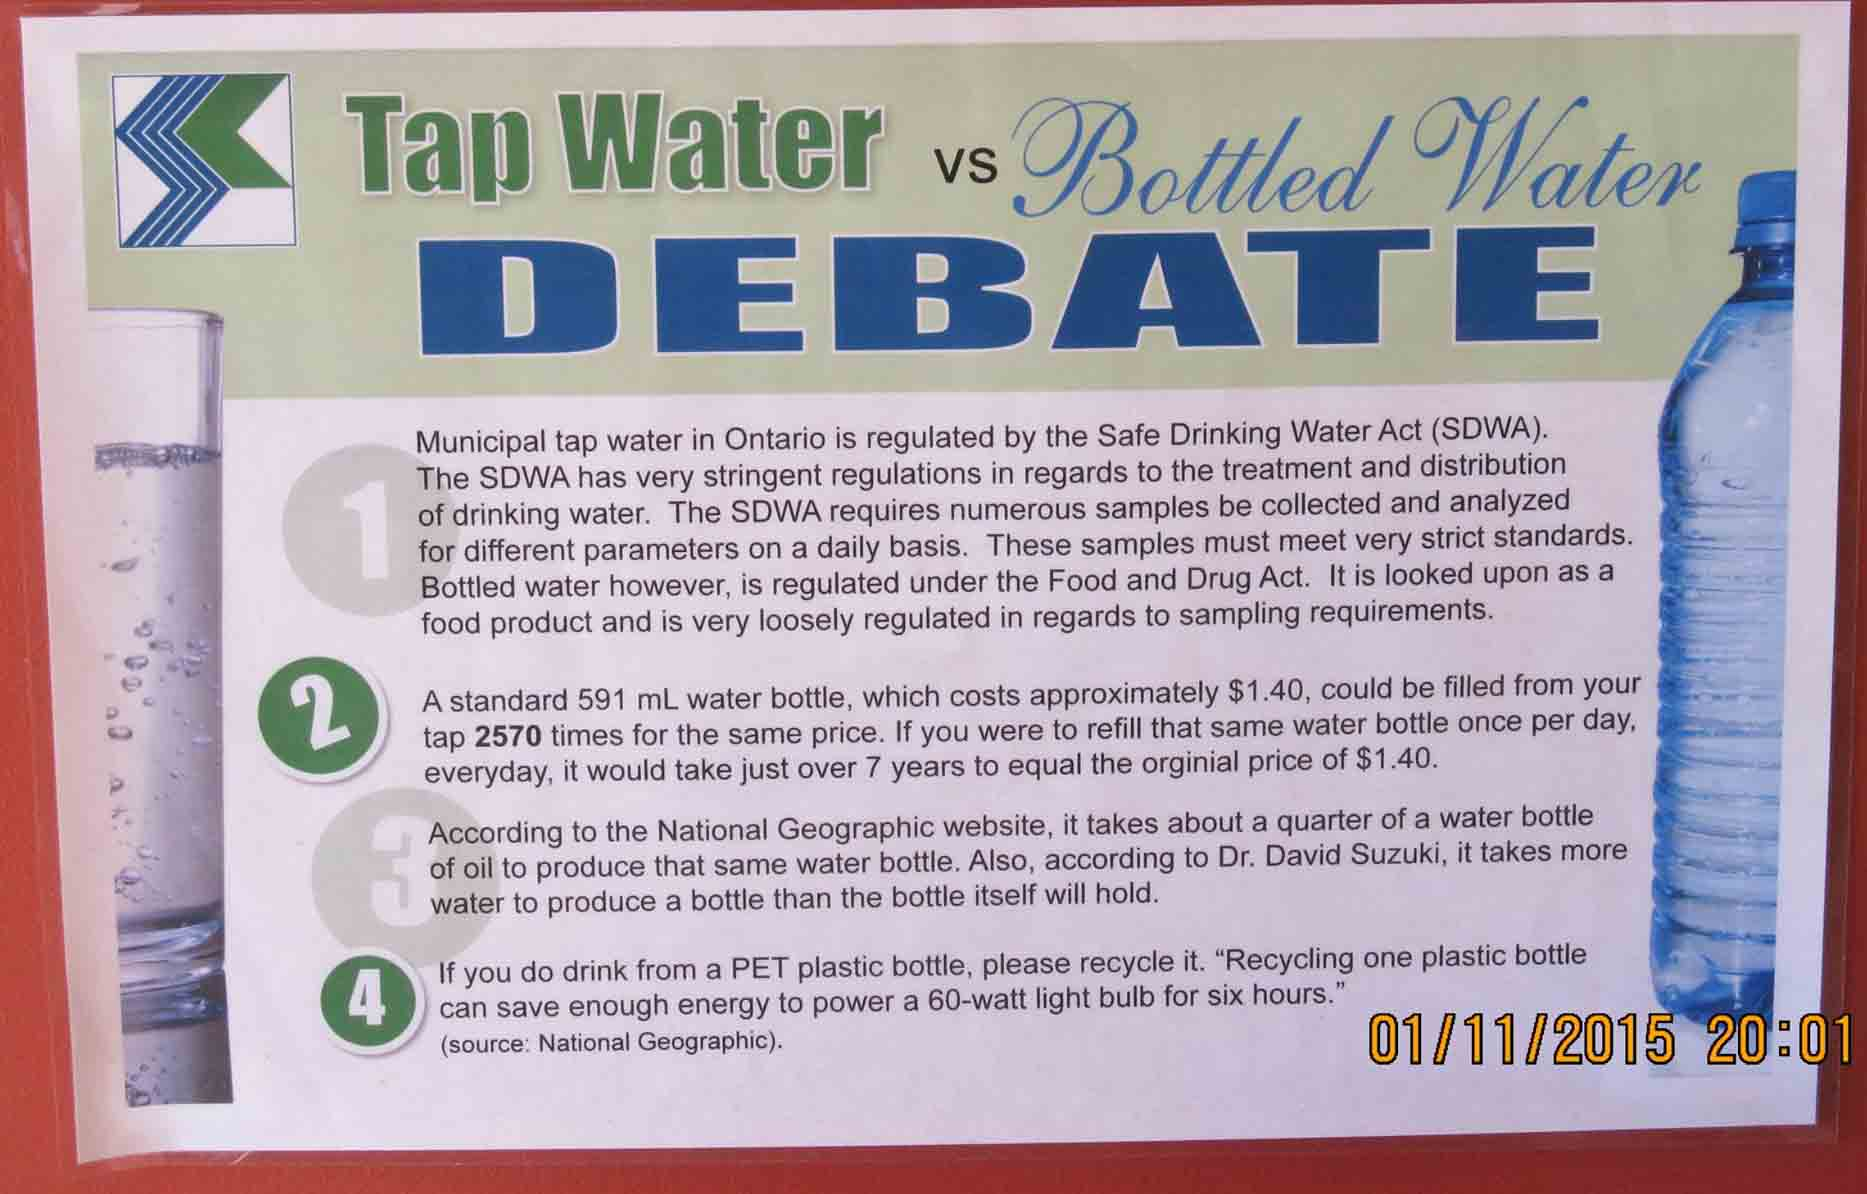 bottled water vs tap water Tap water vs bottled water, which is better learn more about the risks and concerns with drinking and conserving one of life's most precious resources.